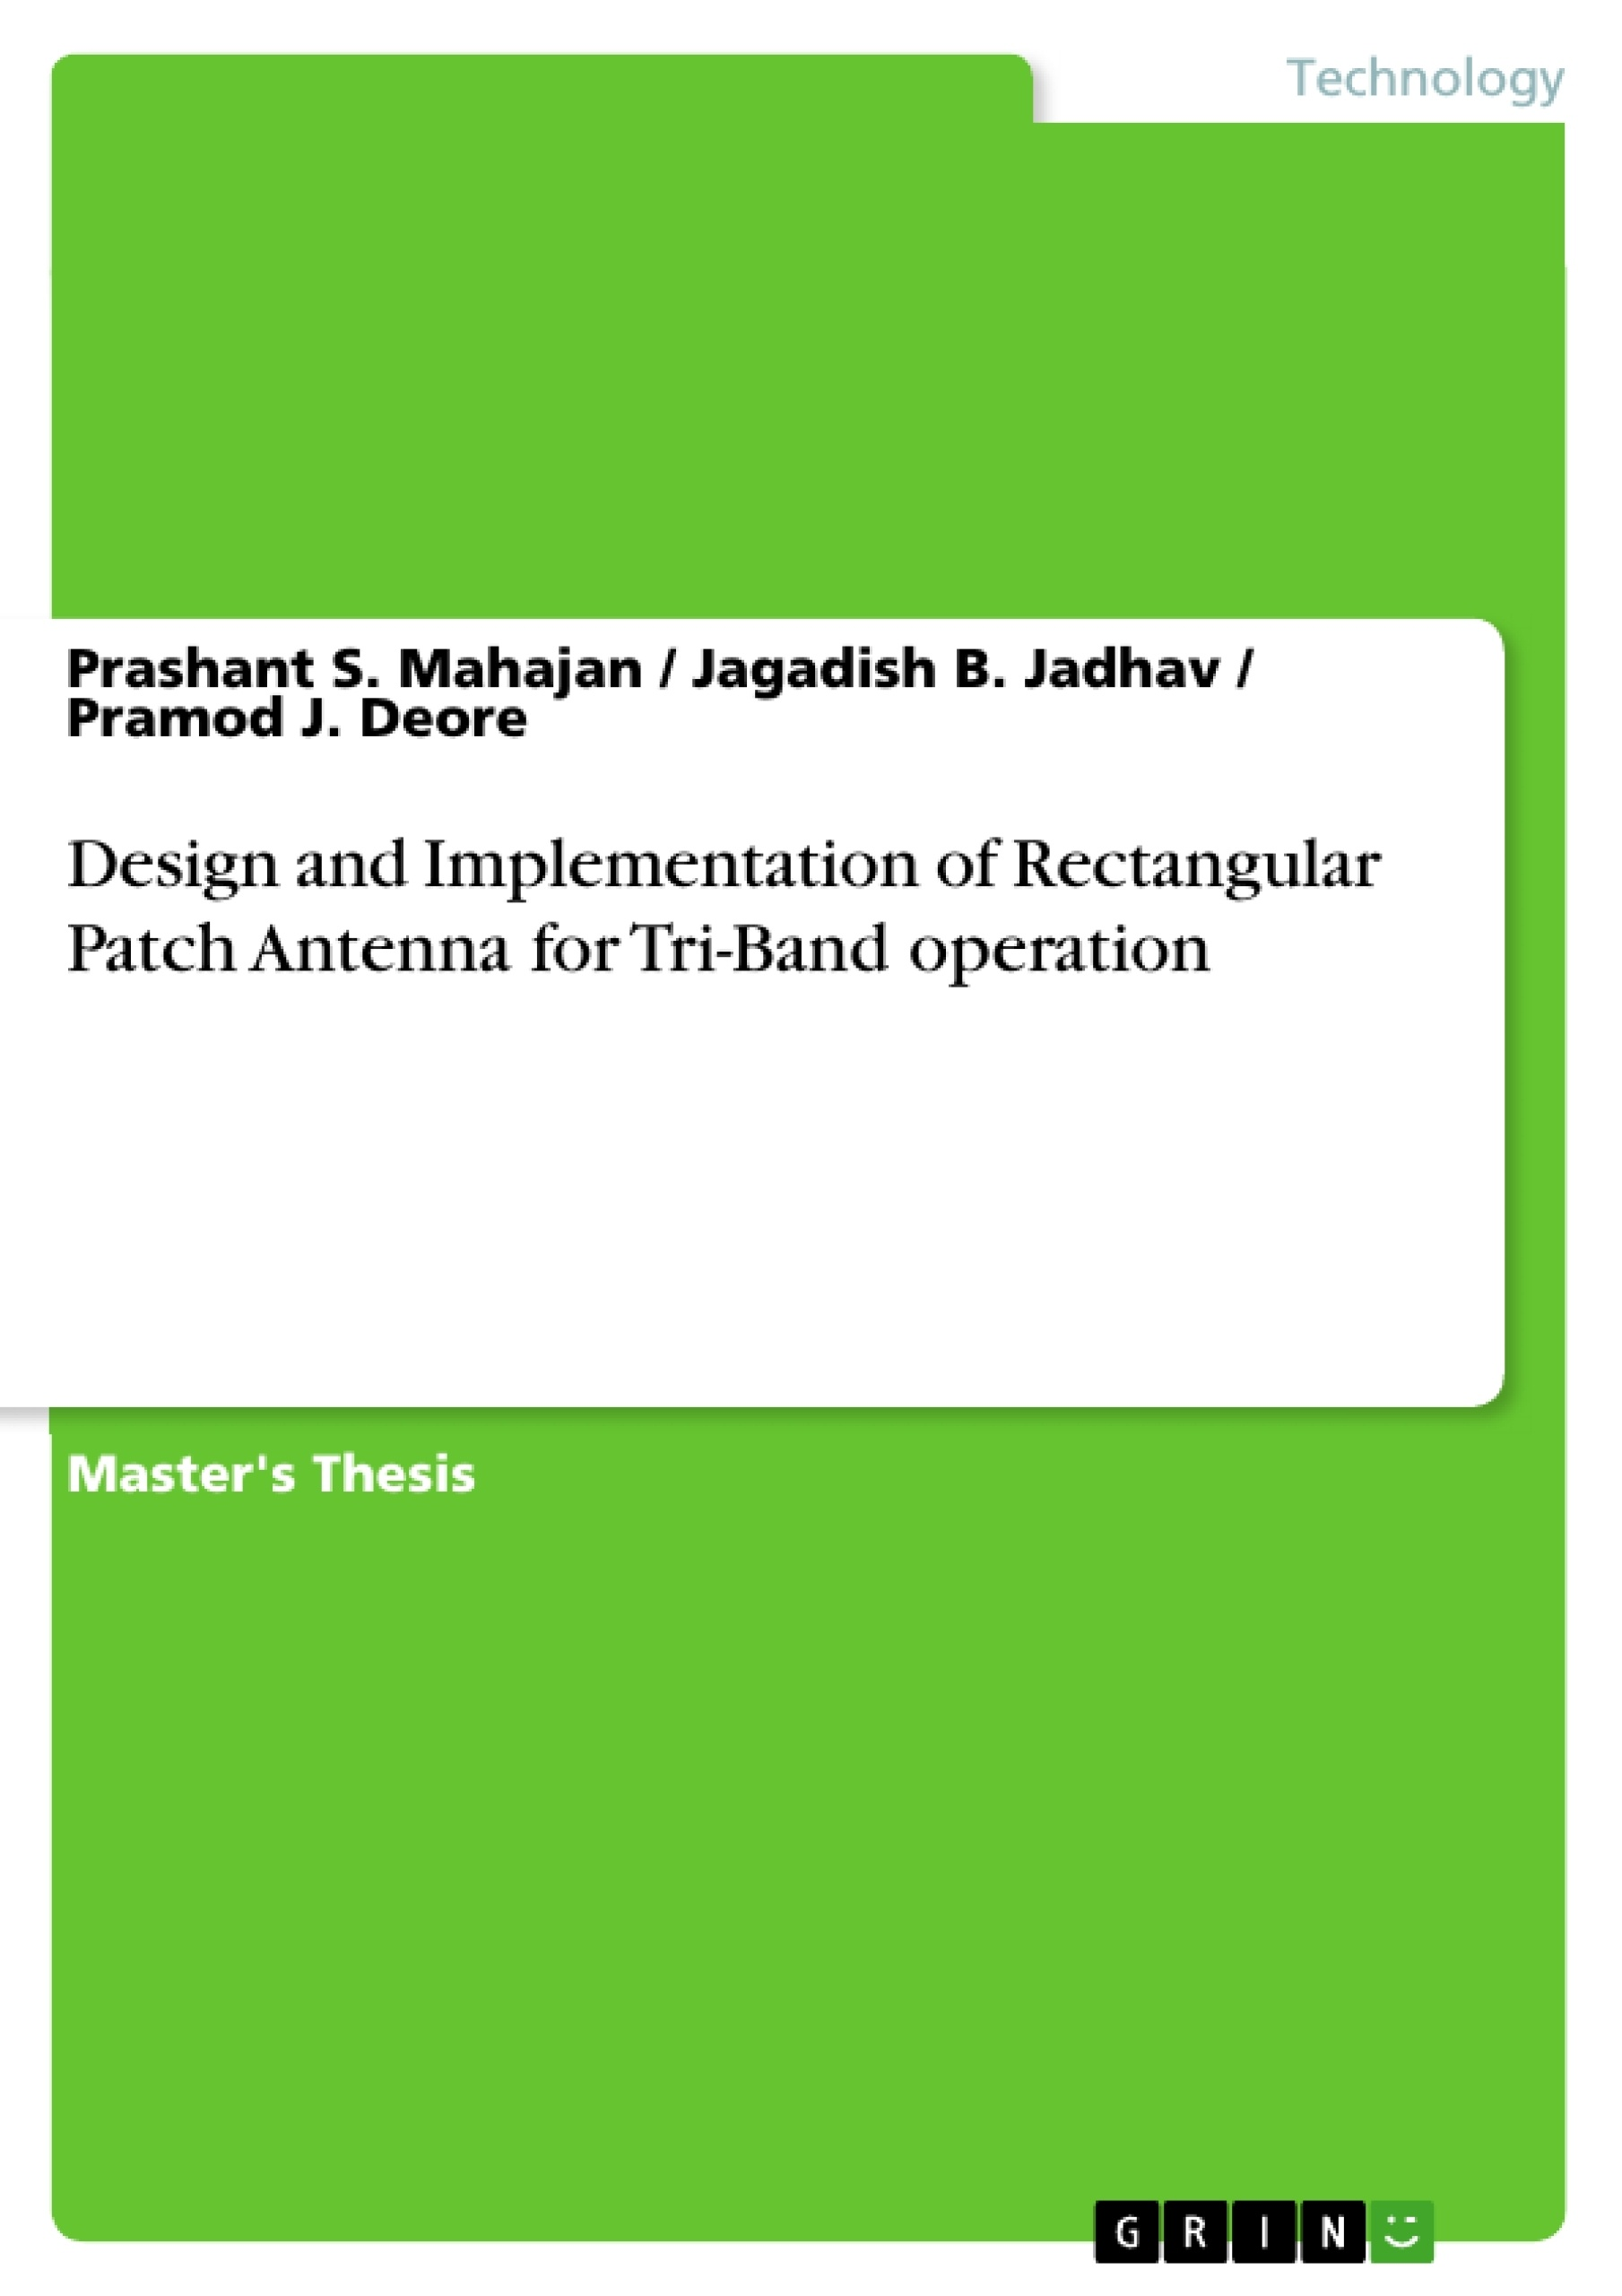 Title: Design and Implementation of Rectangular Patch Antenna for Tri-Band operation